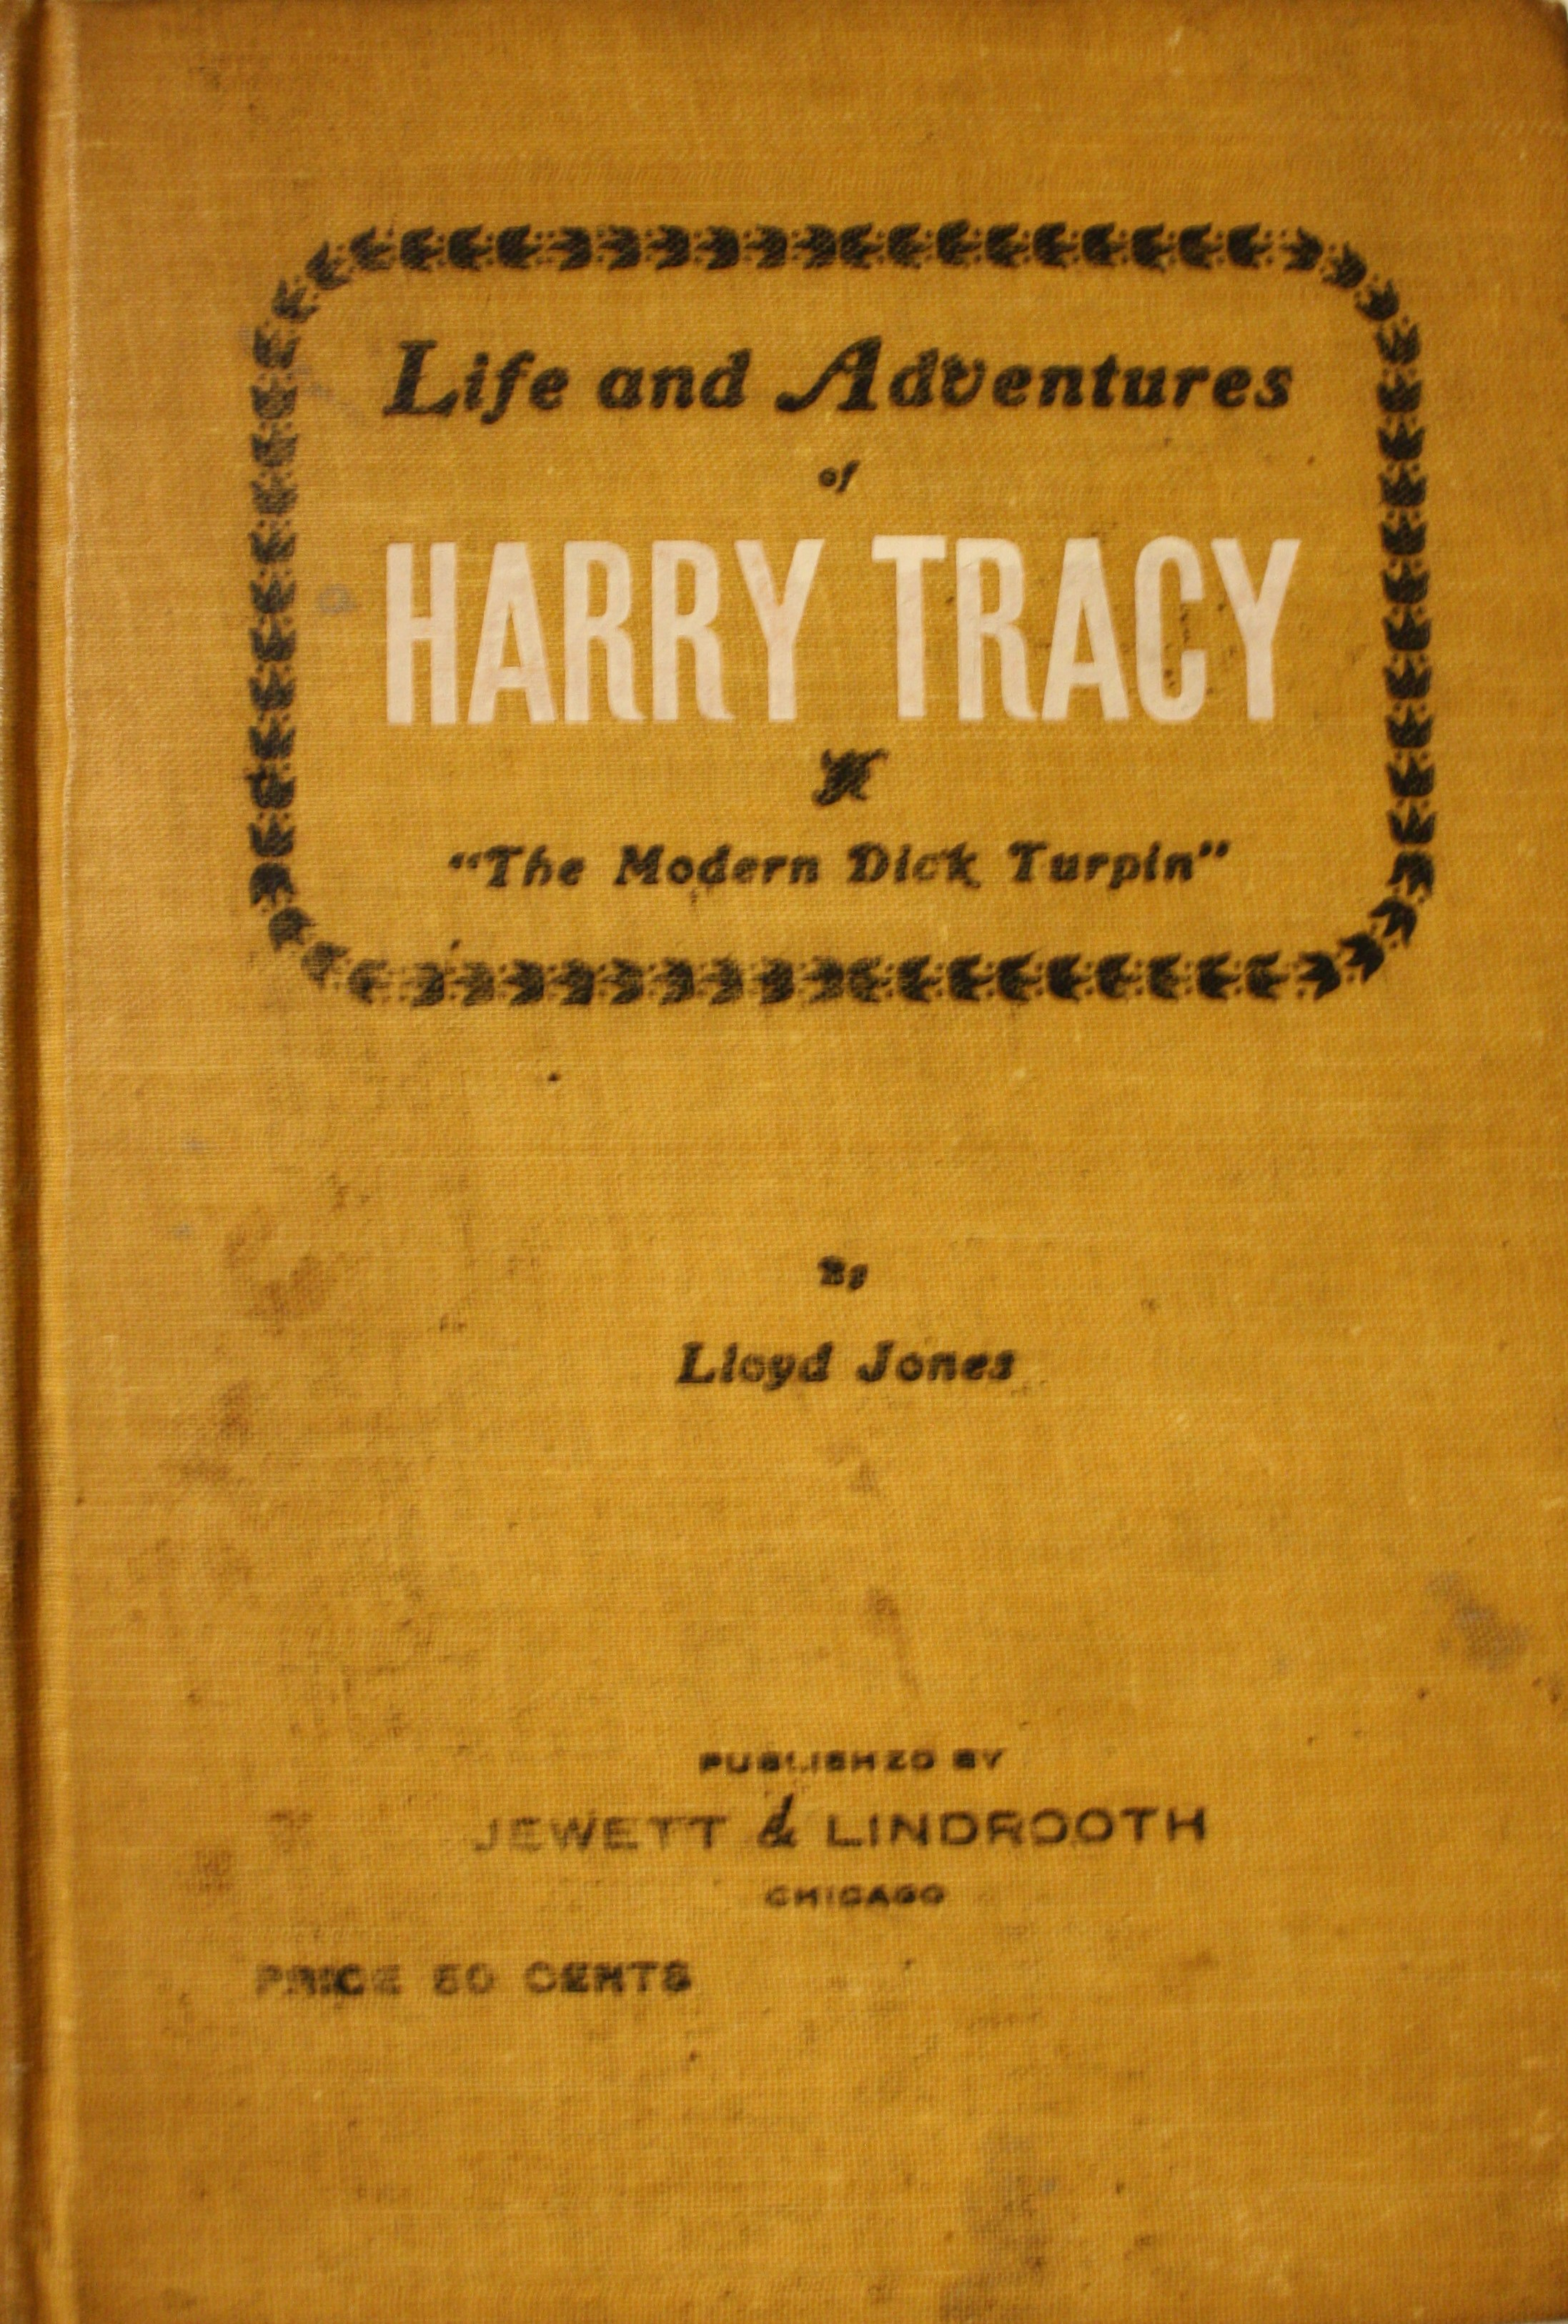 Image for Life and Adventures of Harry Tracy The Modern Dick Turpin